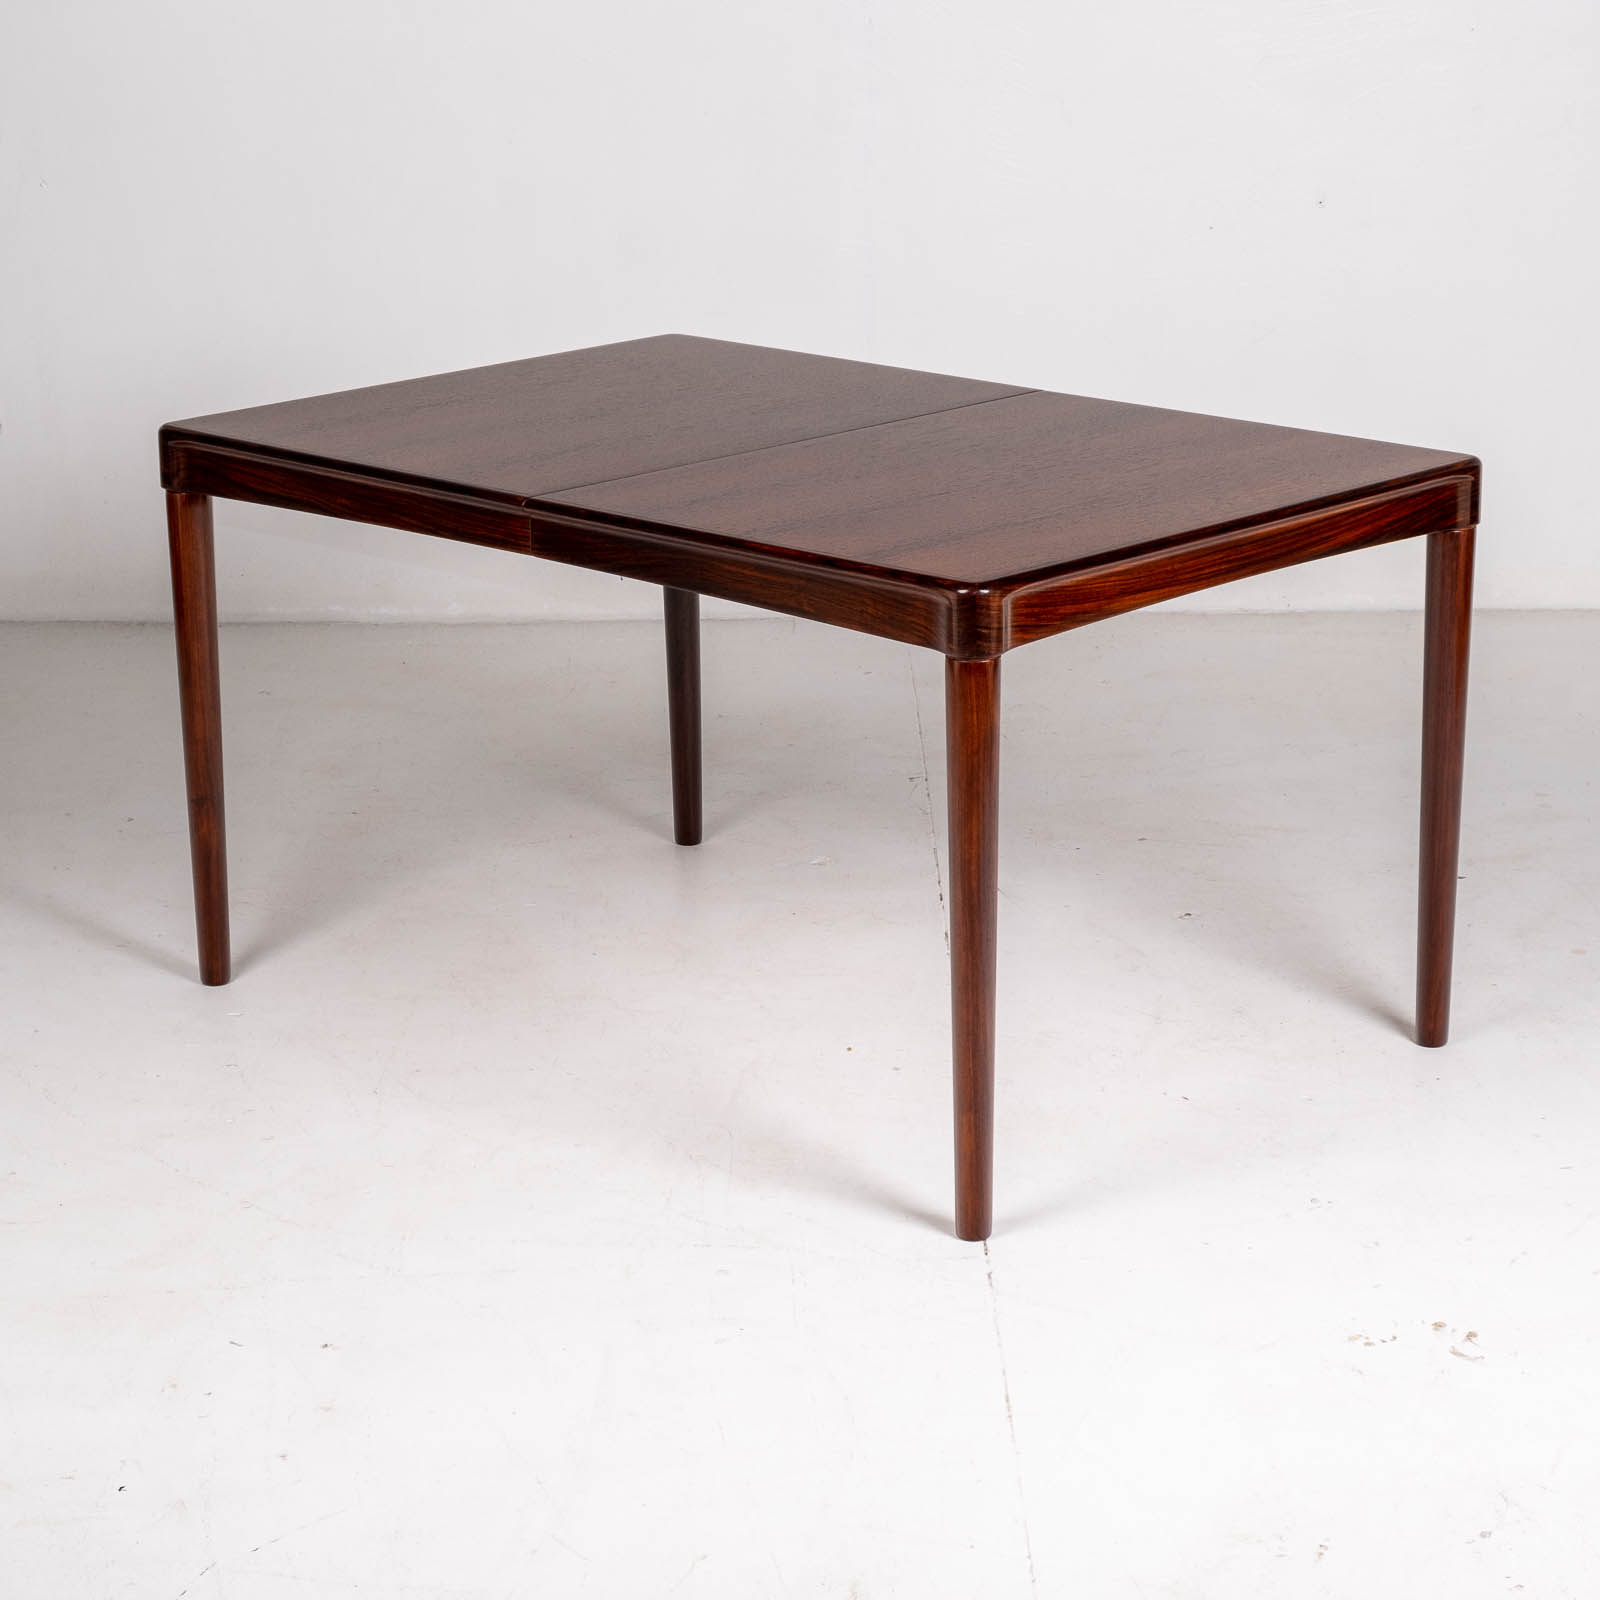 Extendable Dining Table By Hw Klein For Bramin In Rosewood, 1960s, Denmark8